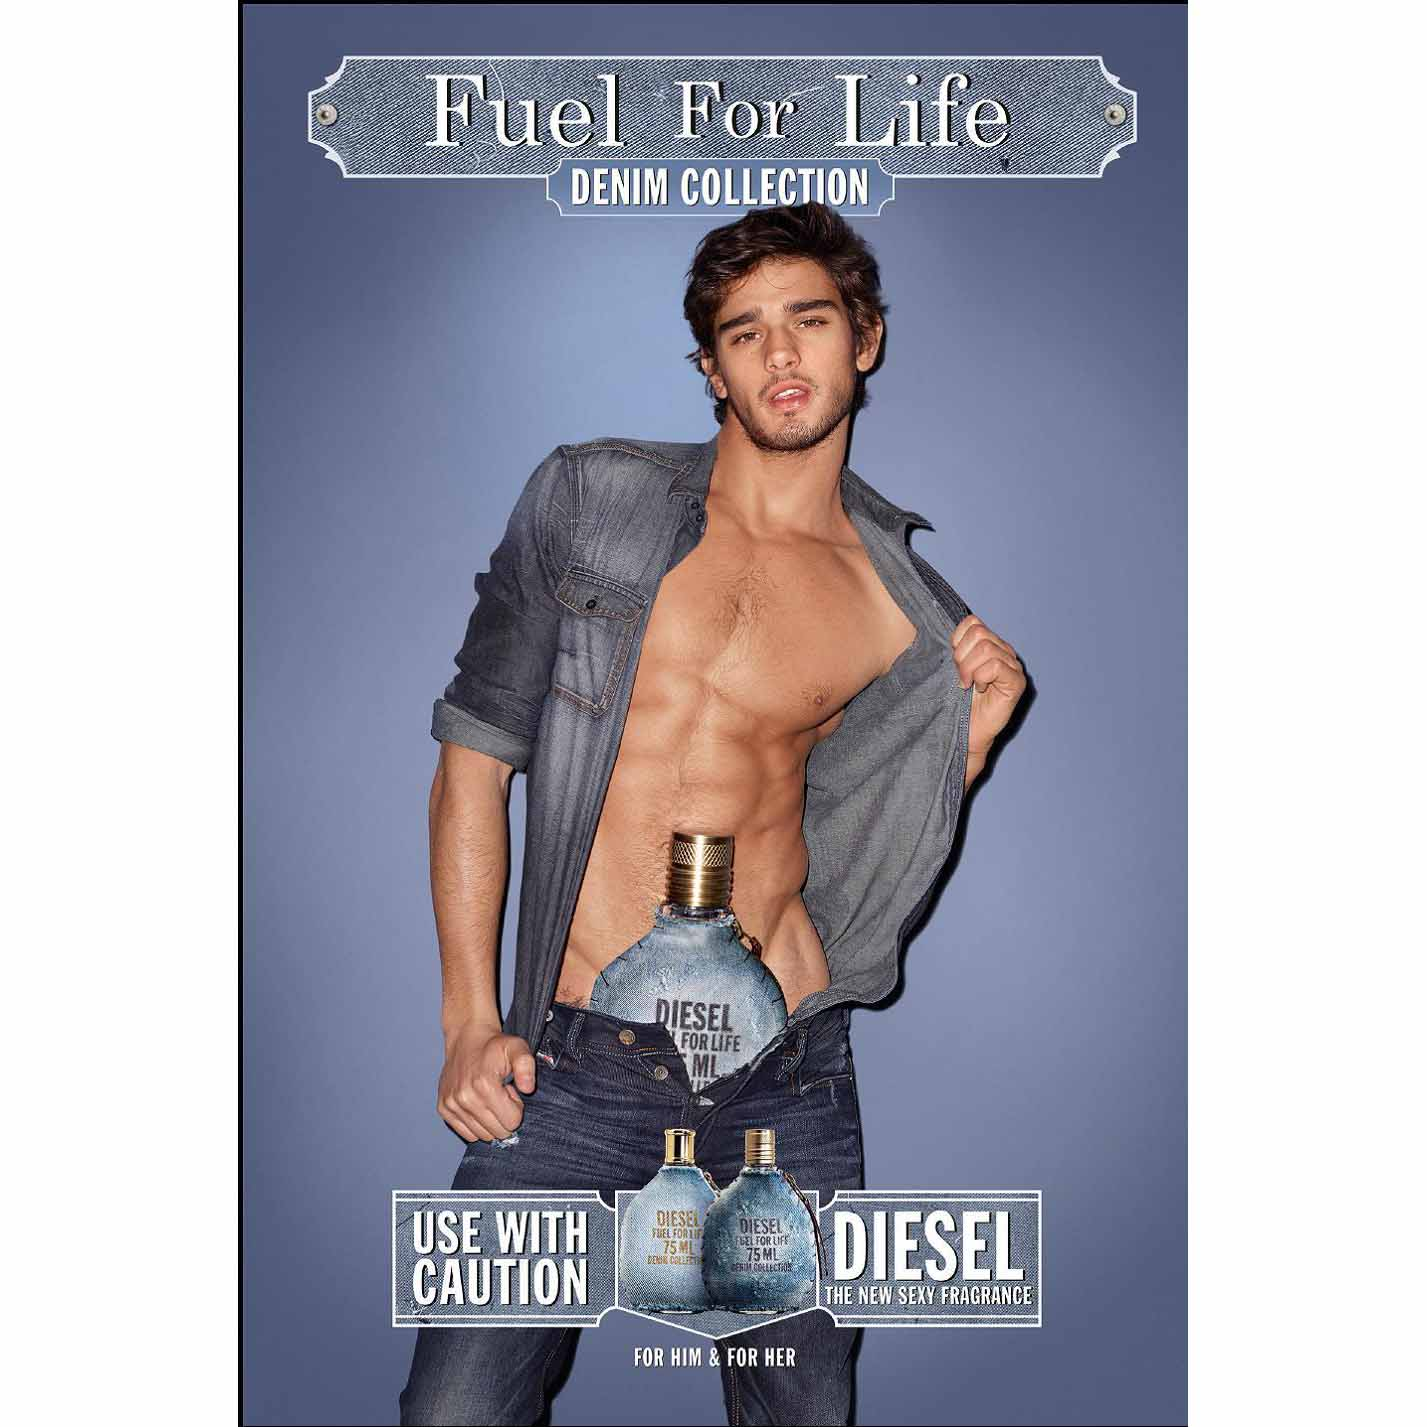 Fuel For Life Denim Collection for him